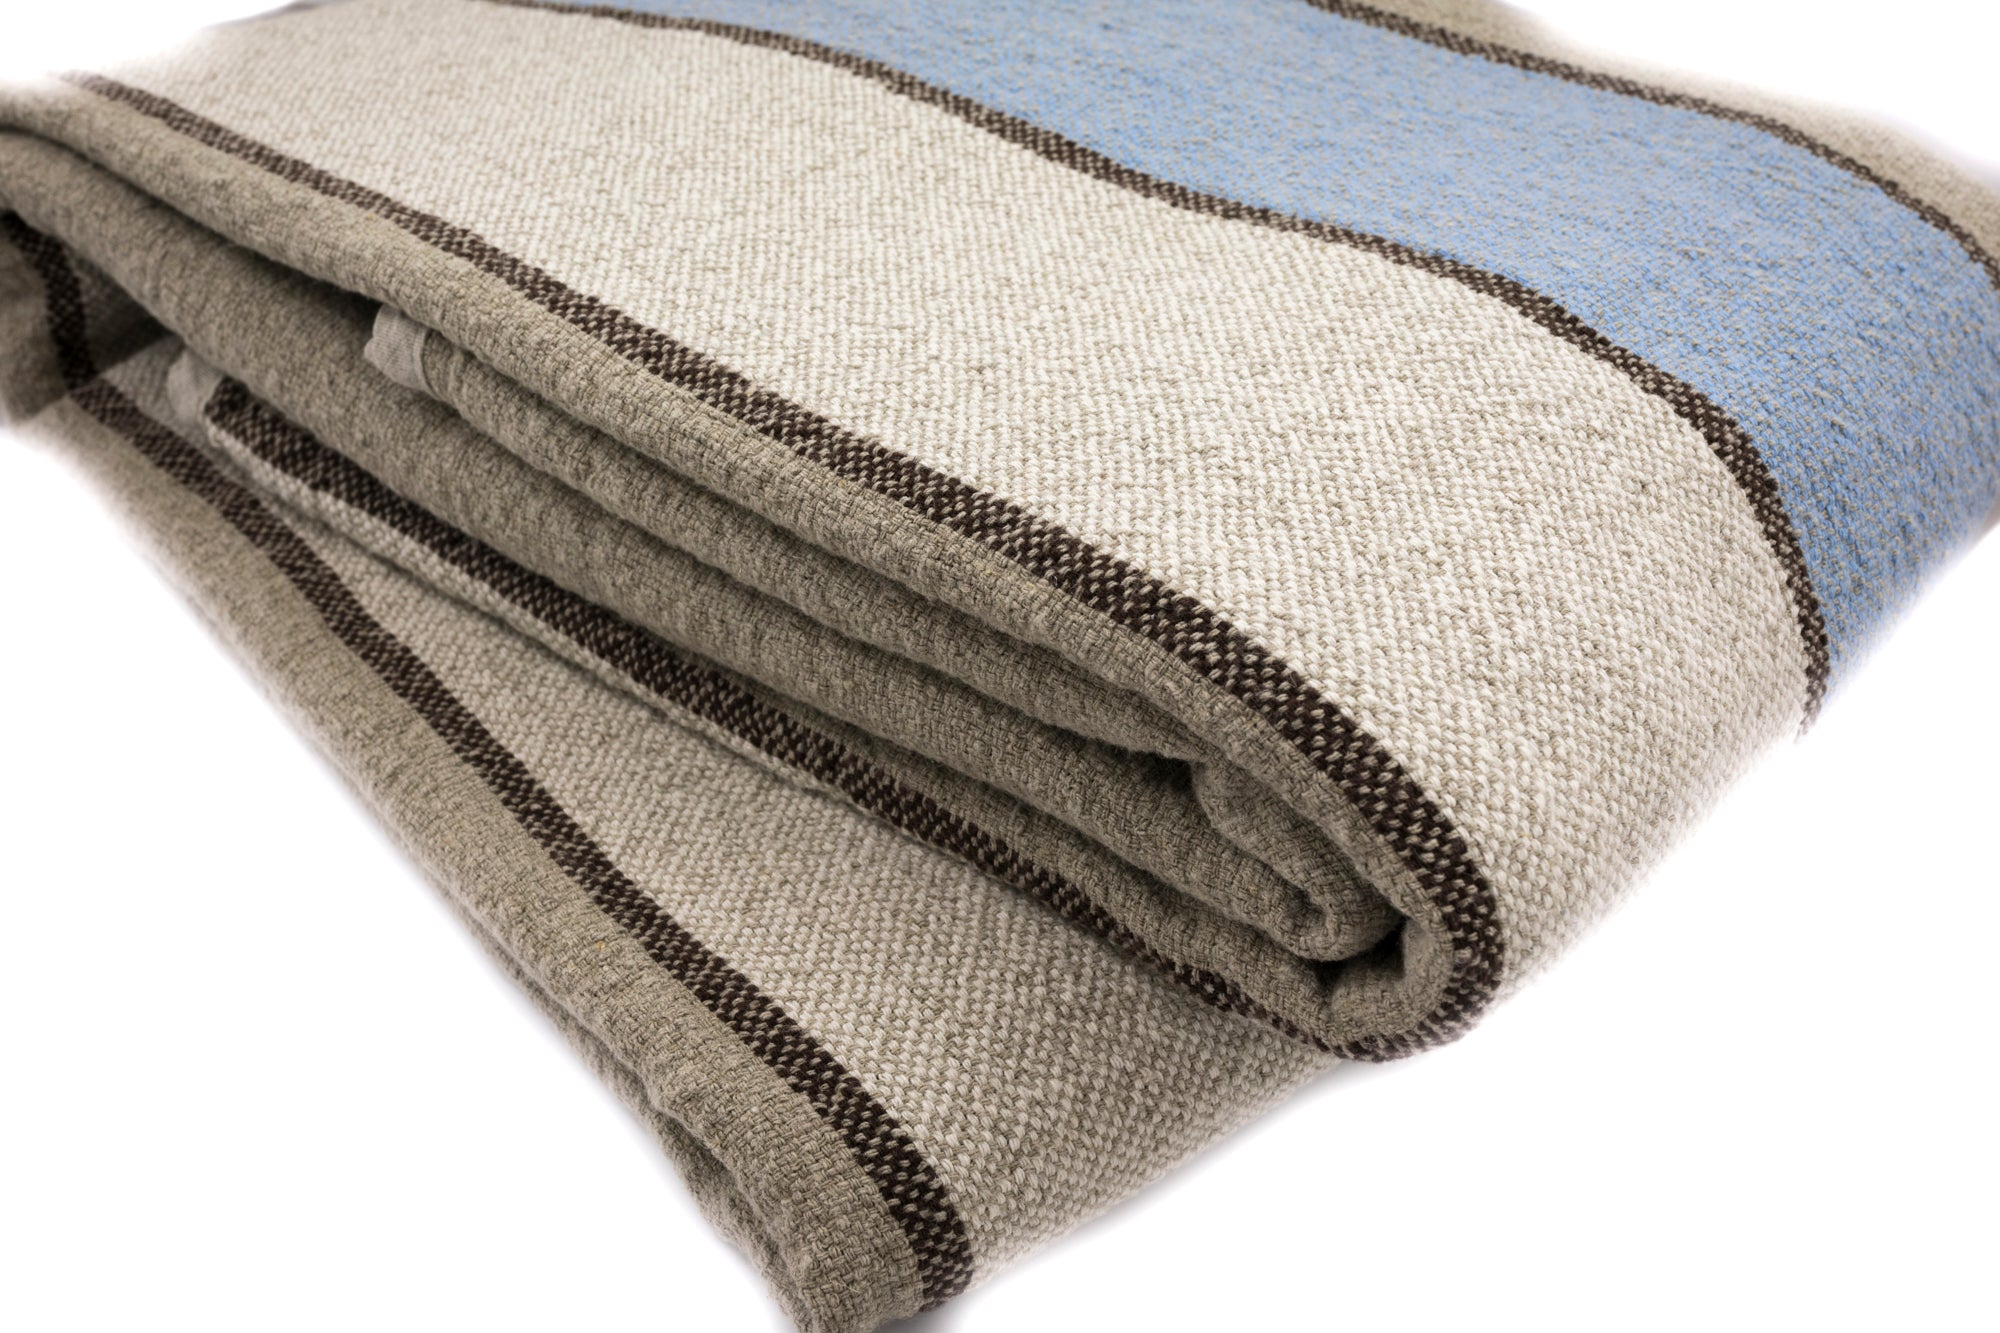 BLESS LINEN 100% Linen Throw Blanket, 87 x 83 Inches, Blue Striped